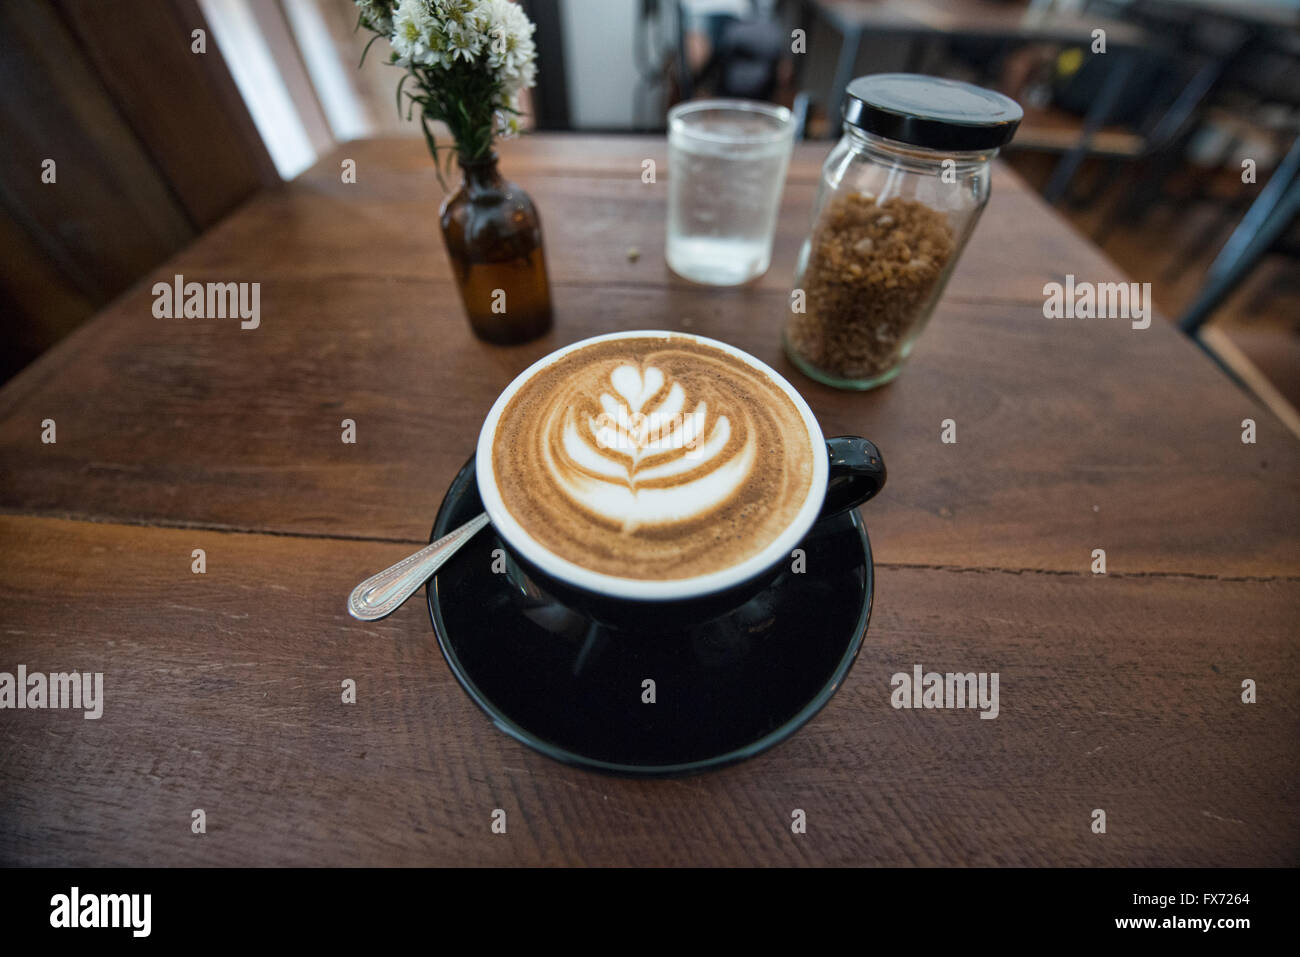 Latte art in Chiang Mai, Thailand - Stock Image